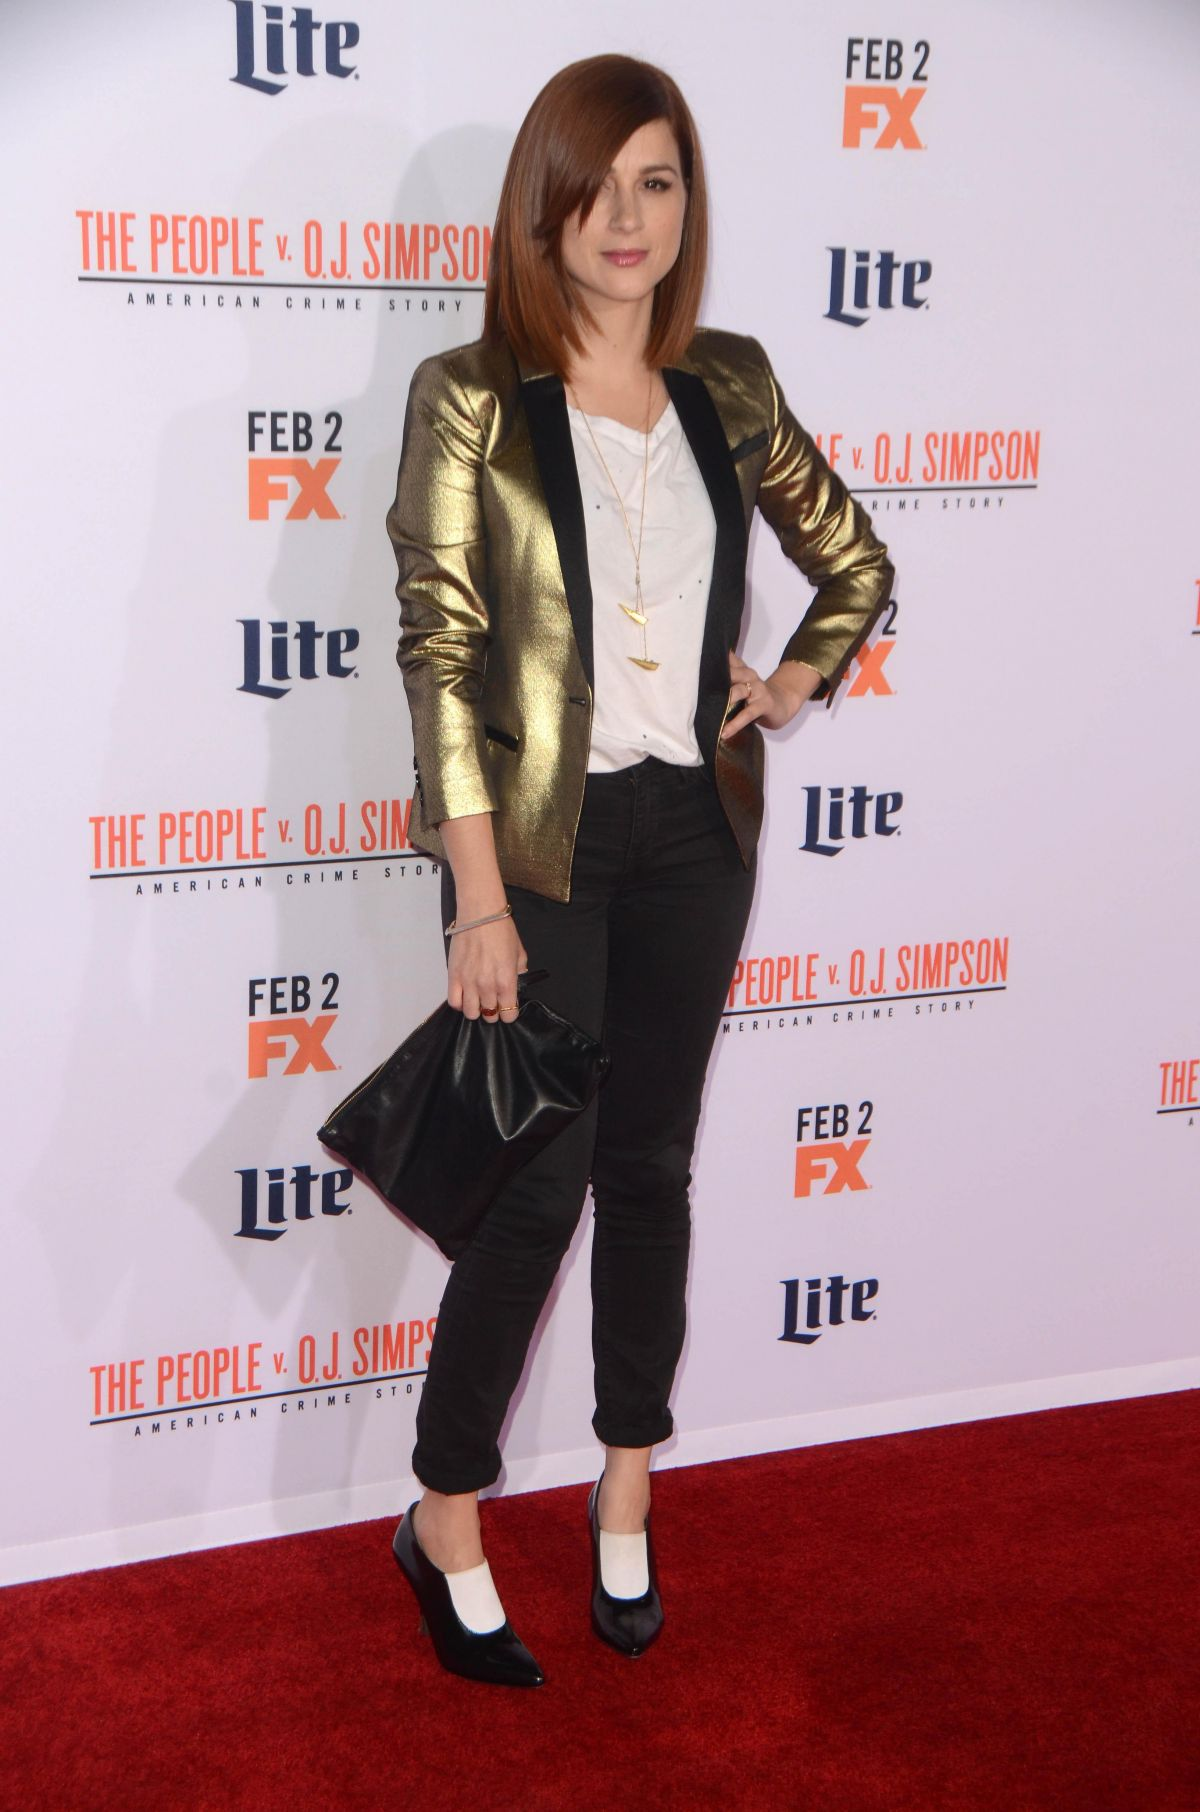 AYA CASH at American Crime Story: The People V.O.J. Simpson Premiere 01/27/2016